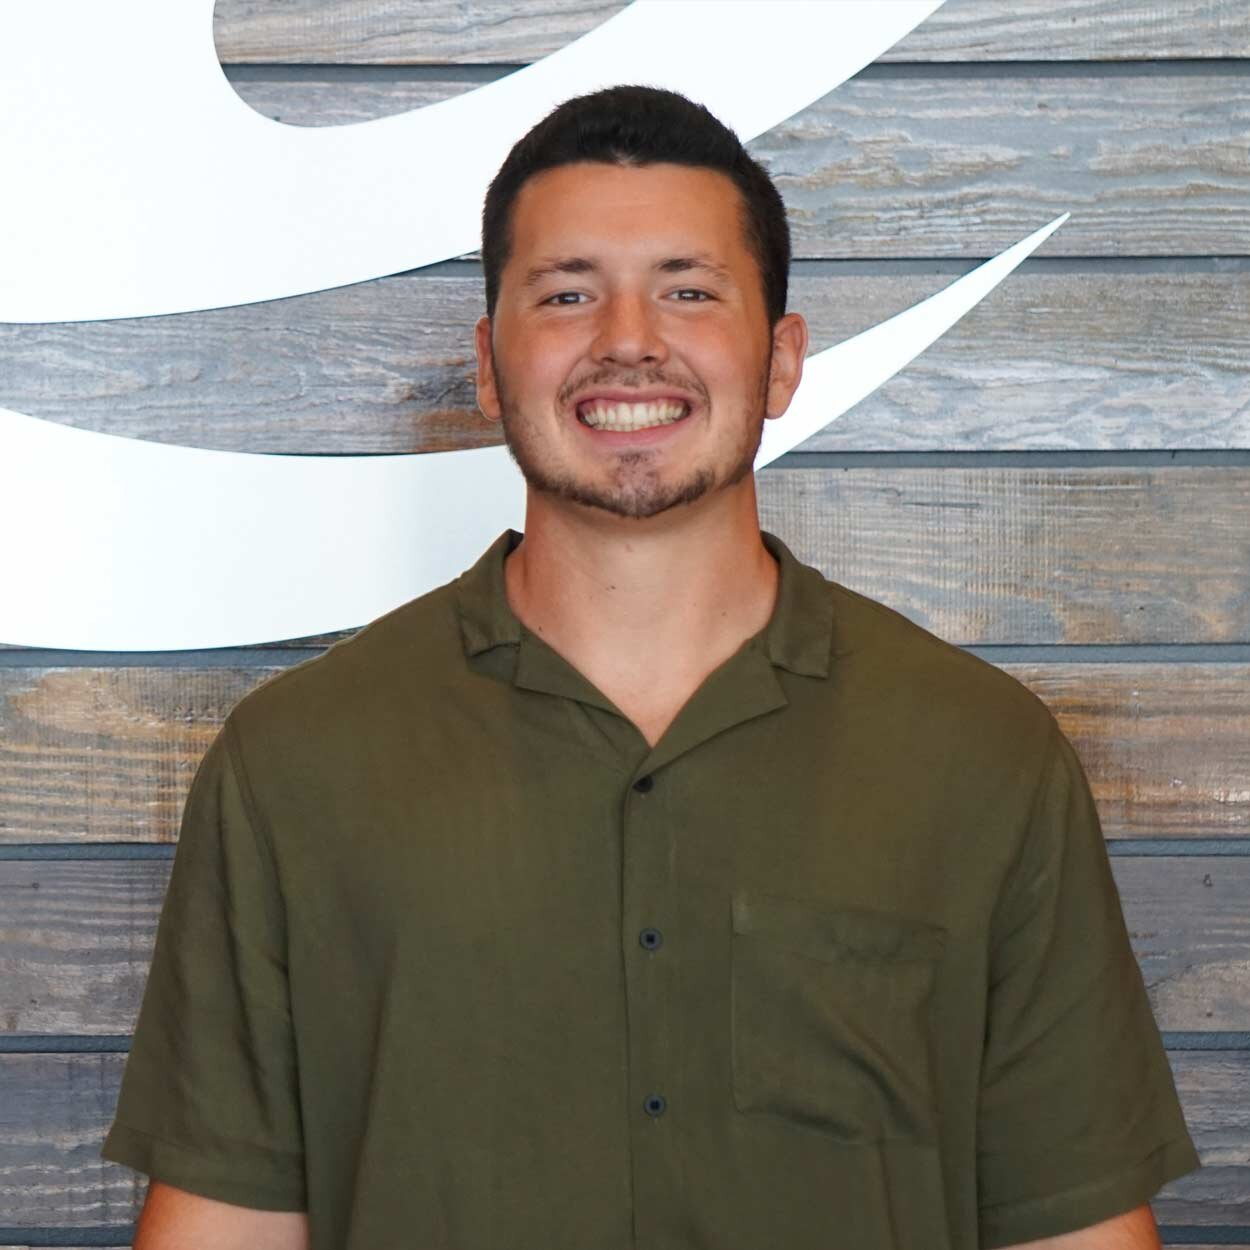 Tyler Sheppard - COLLEGE / YOUNG ADULTS DIRECTORTyler oversees our Young Adults ministry. He is excited to influence this generation and he can't wait to see what God does in their lives.Email Tyler